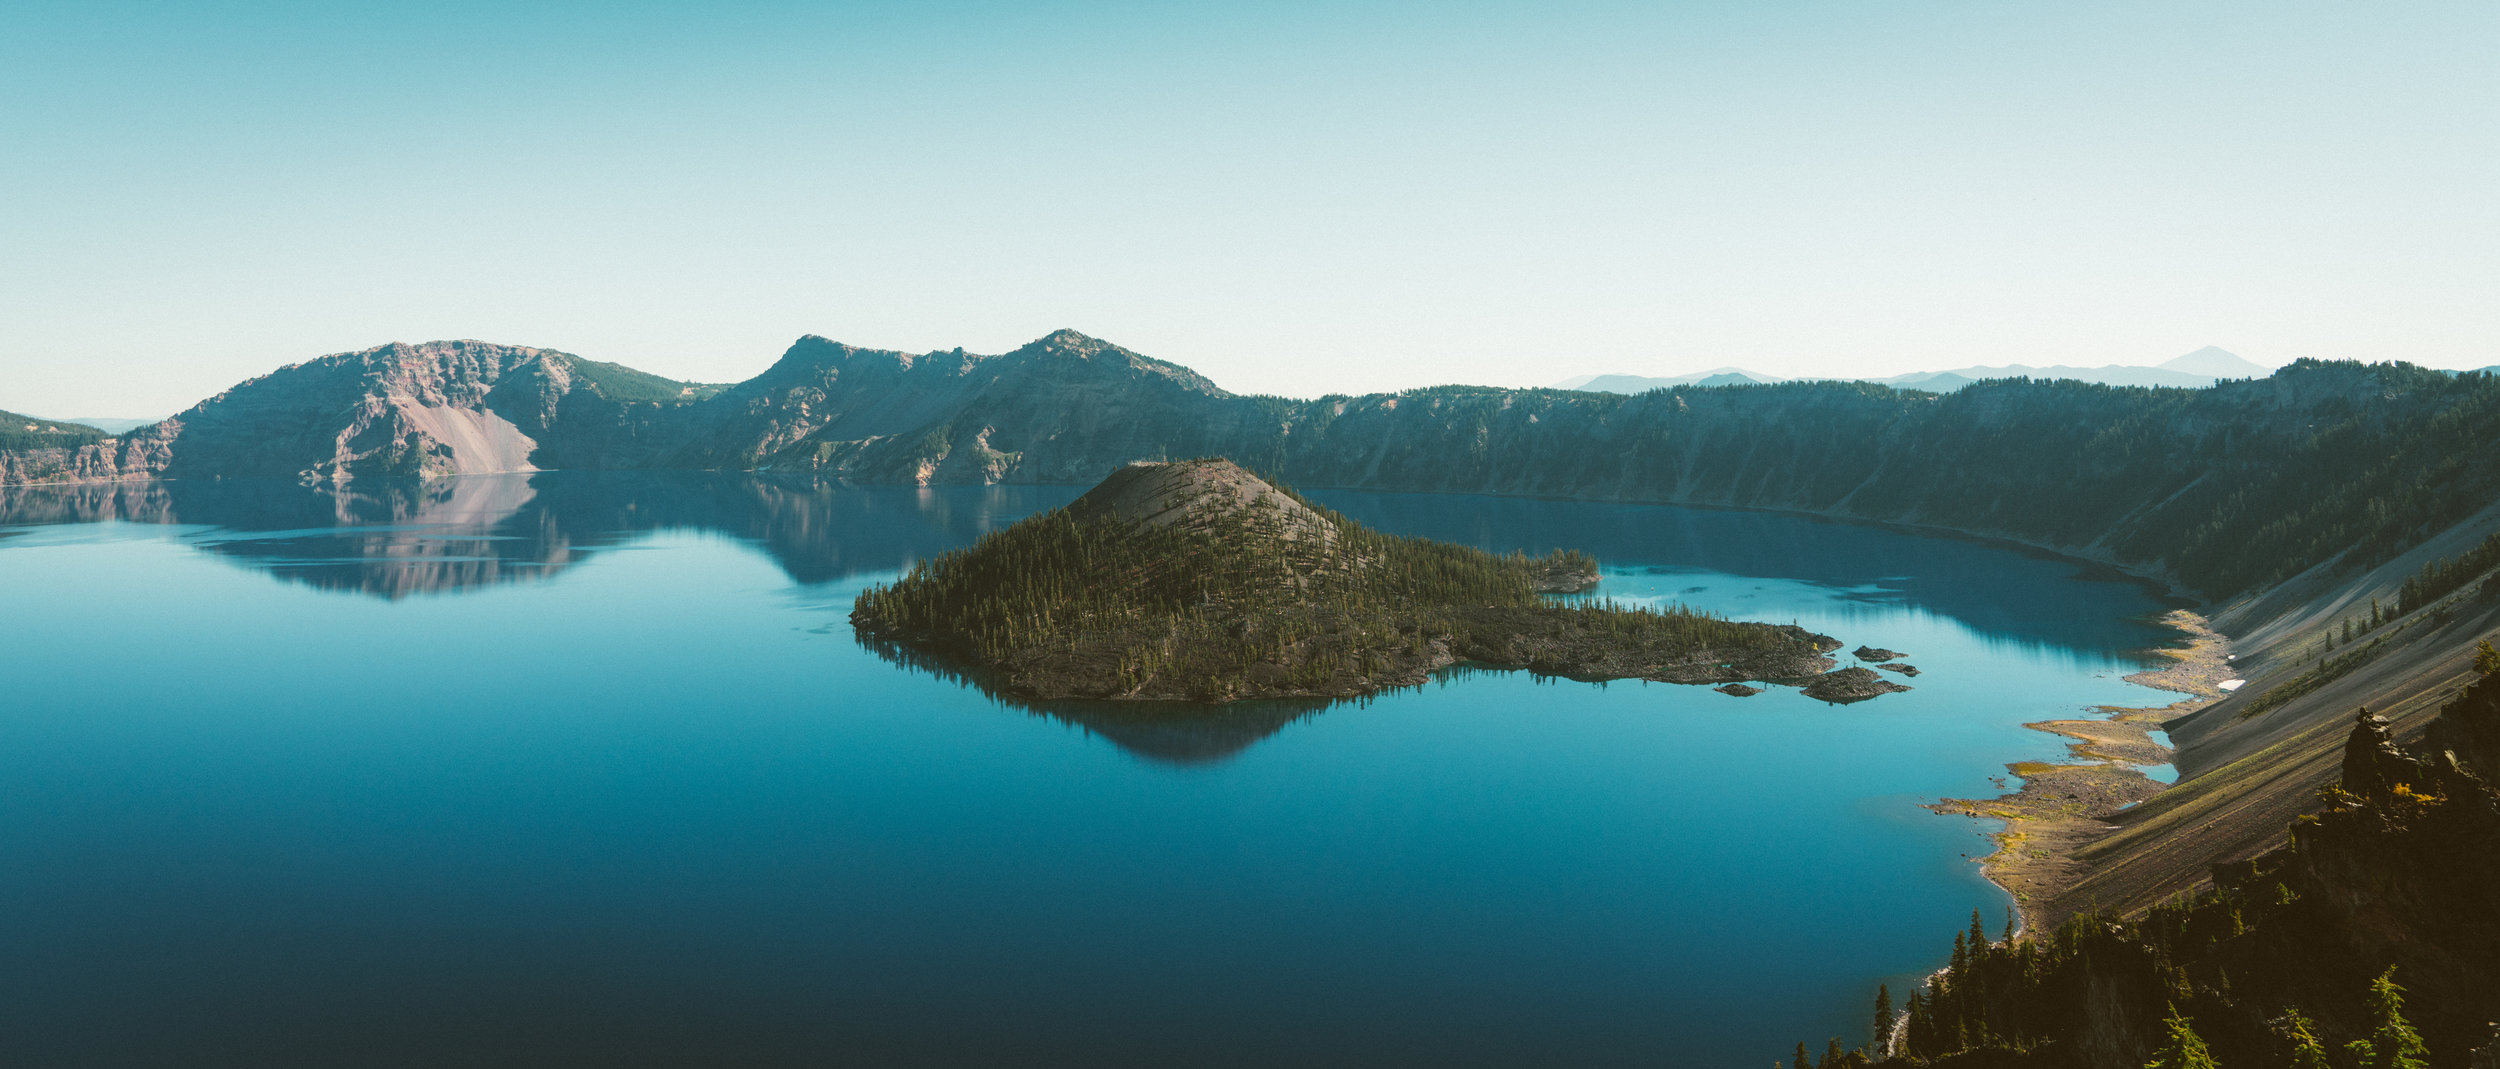 Wizard Island as seen from the rim of Crater Lake.